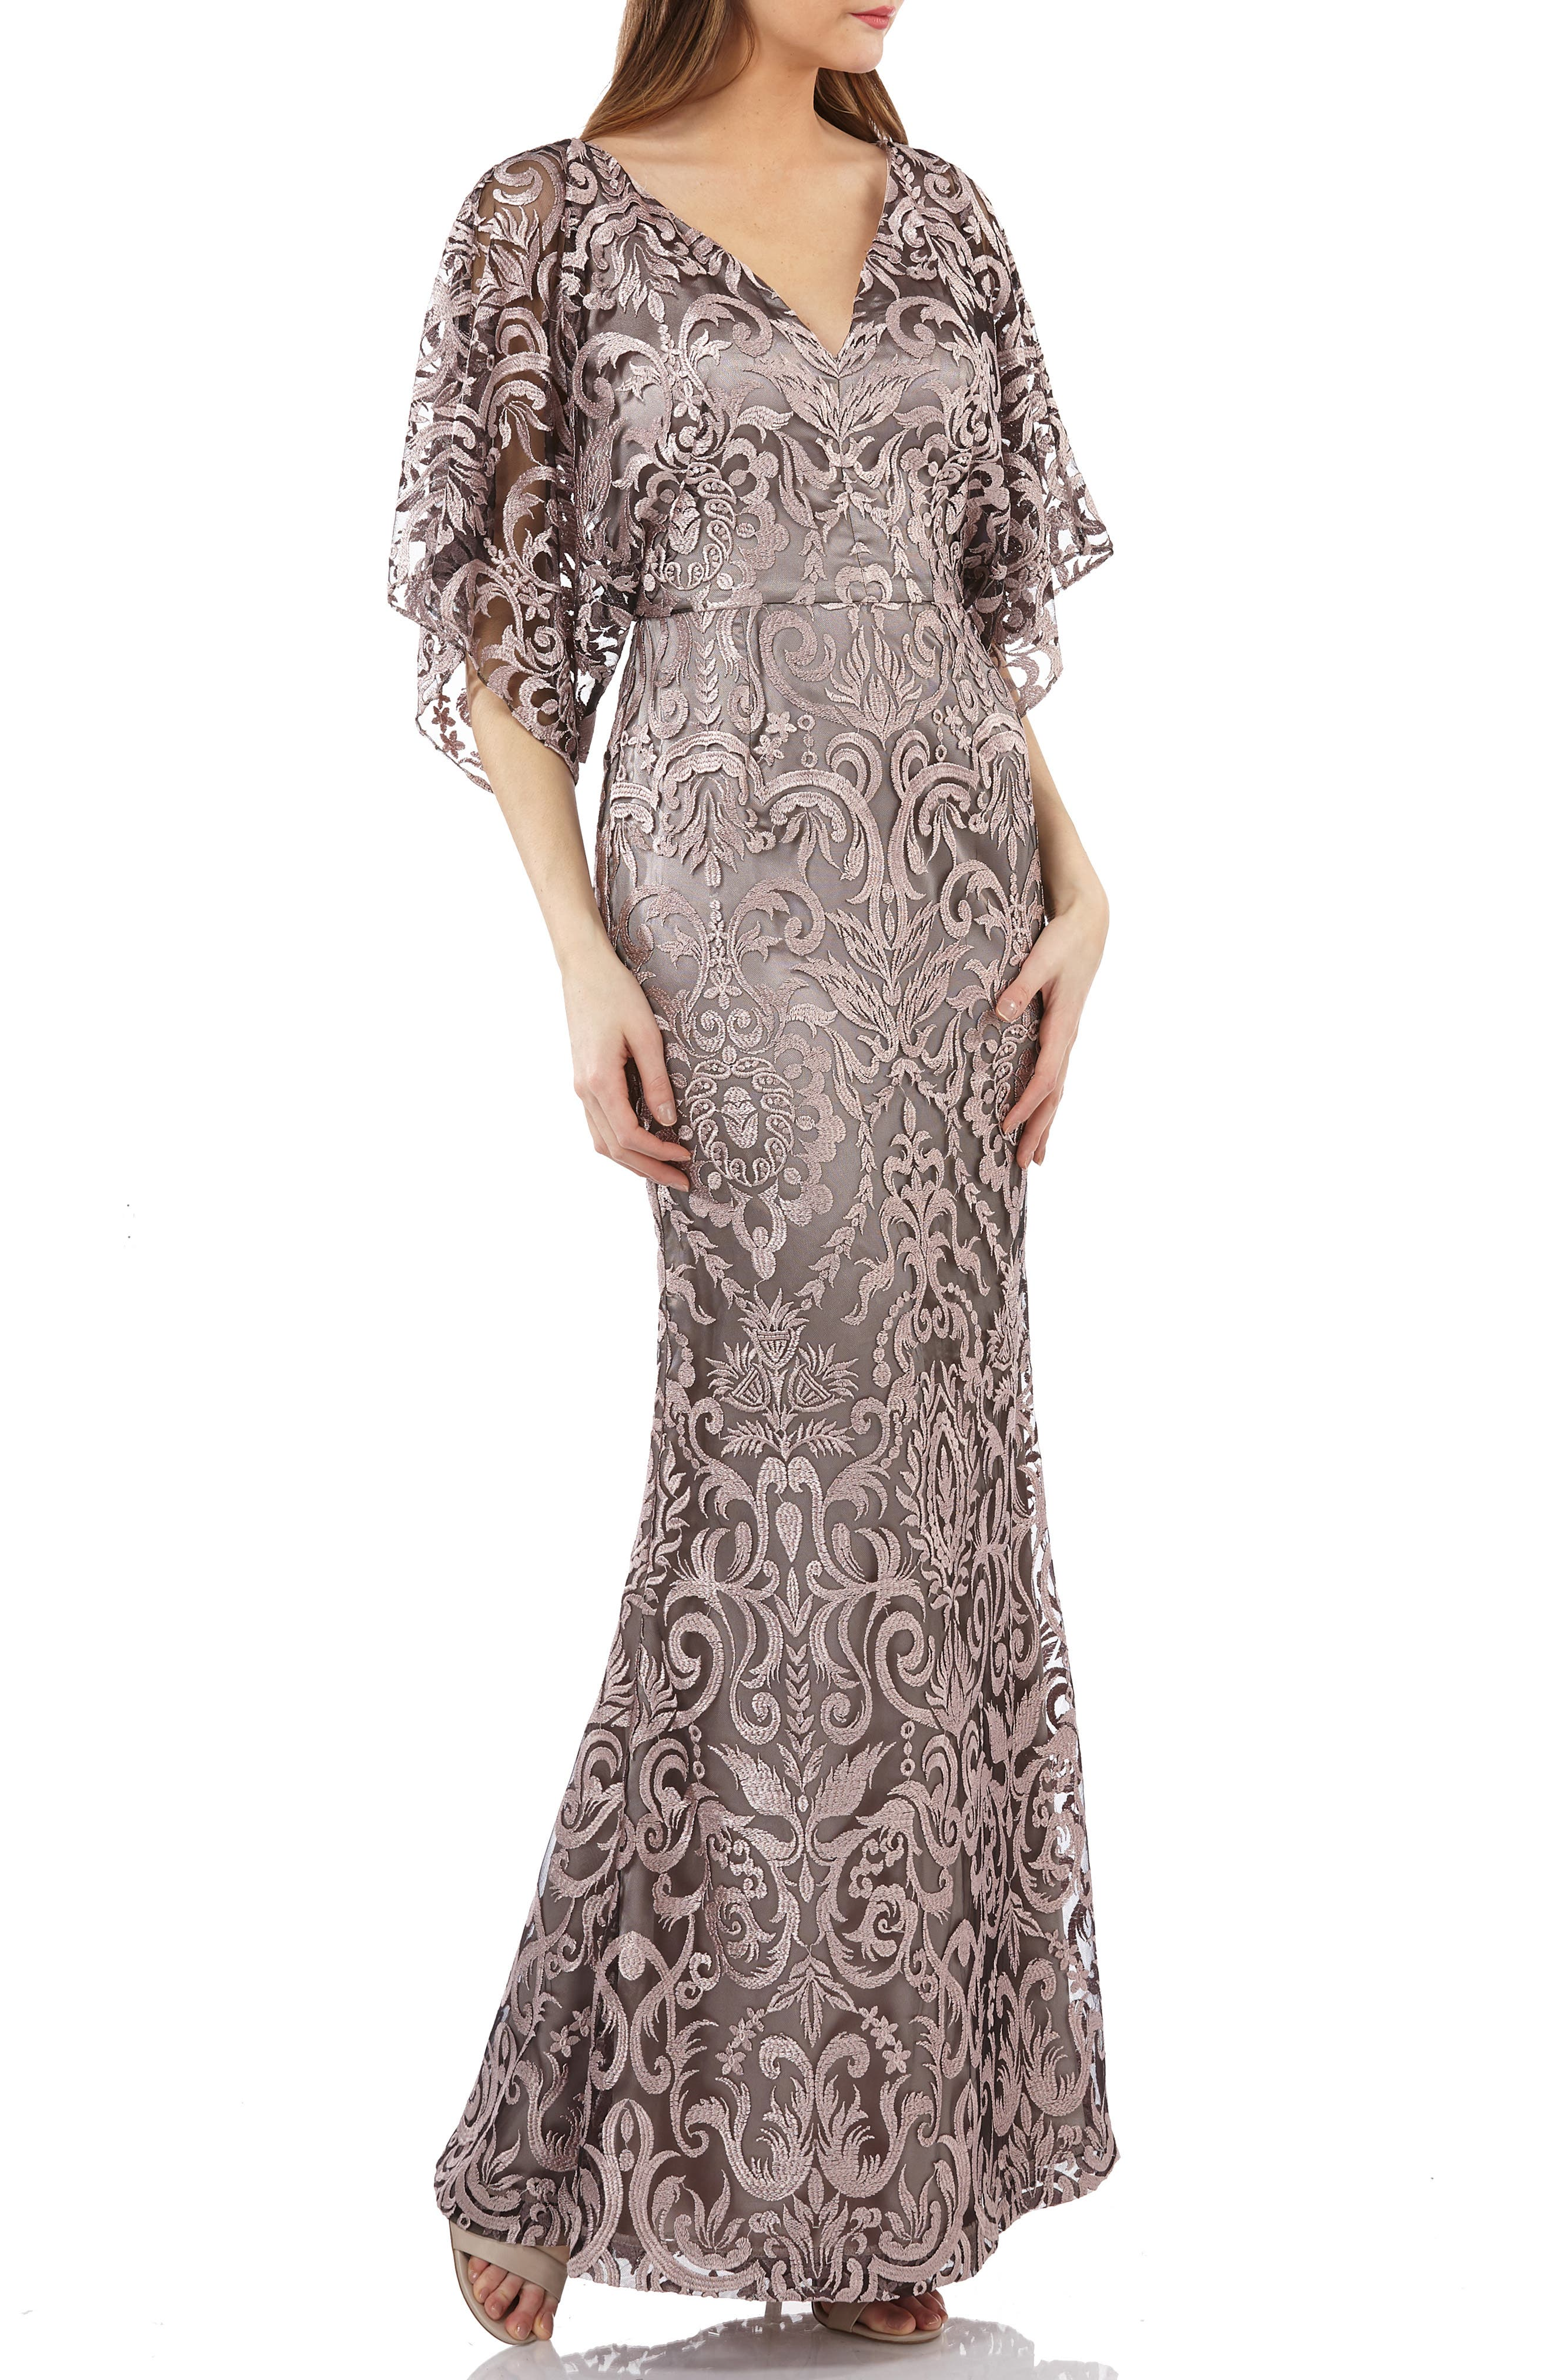 1930s Dresses | 30s Art Deco Dress Womens Js Collections Embroidered Lace Evening Dress $358.00 AT vintagedancer.com